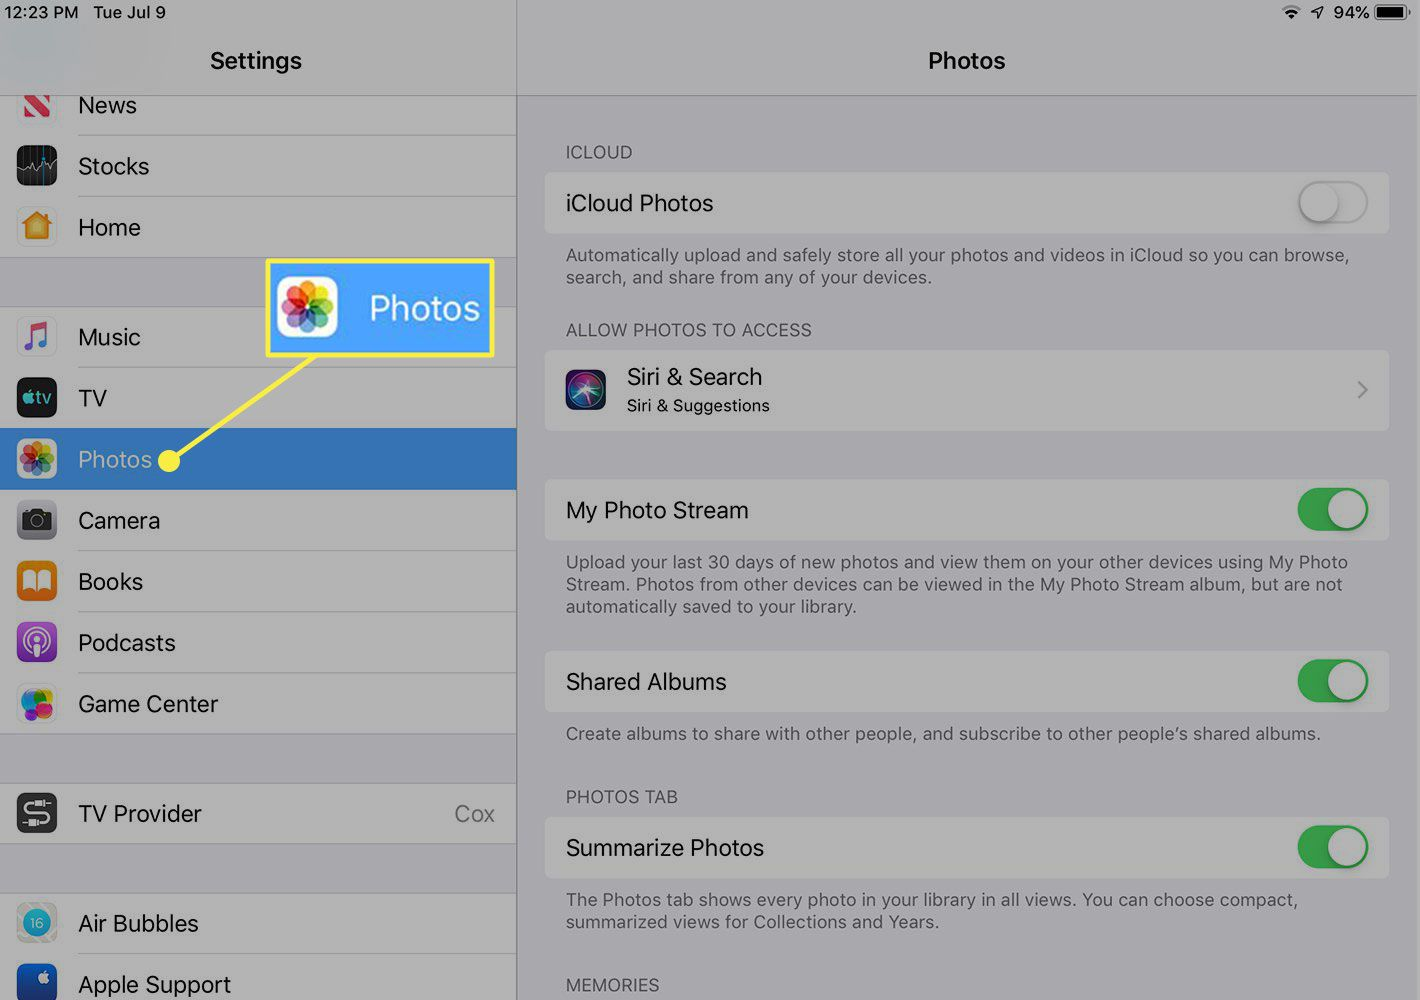 A screenshot of iPad settings with the Photos section highlighted